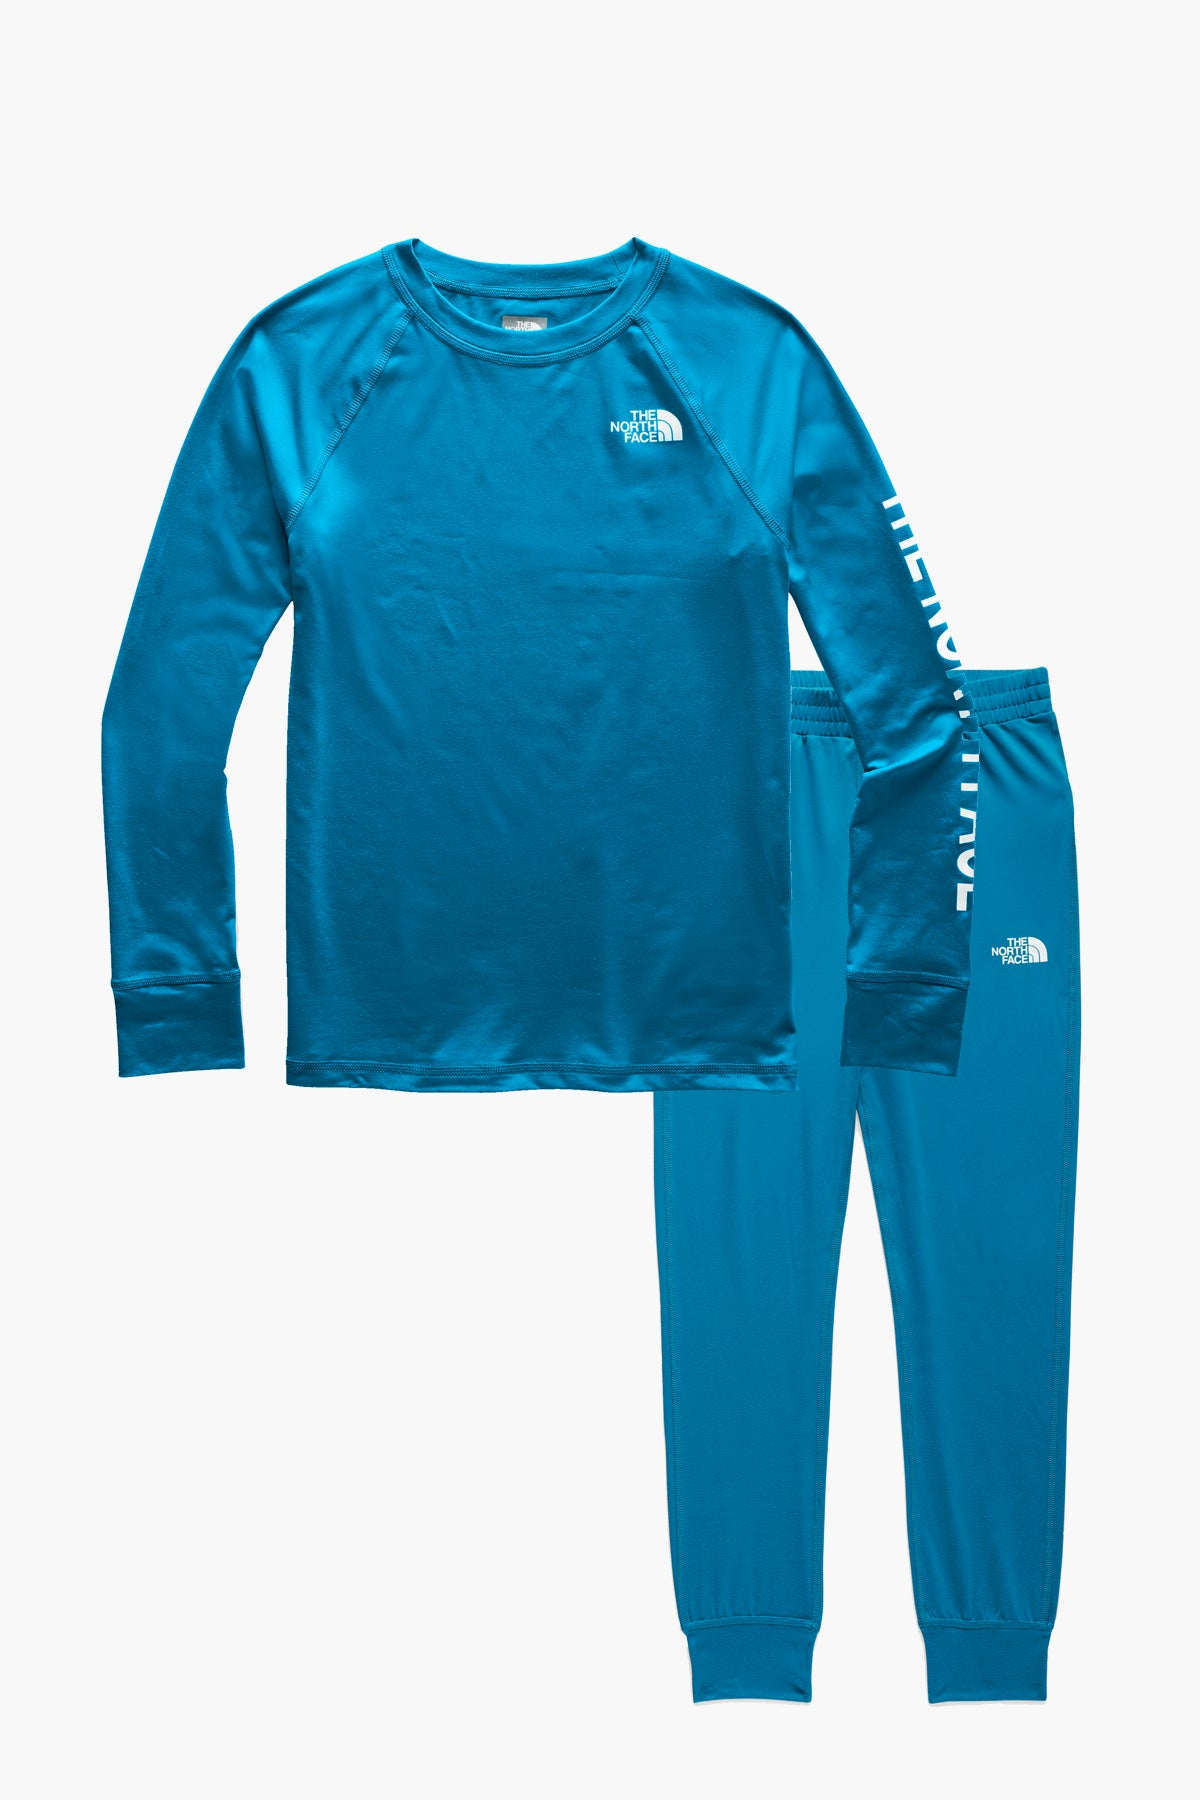 The North Face Youth Warm Crew Baselayer Set - Acoustic Blue